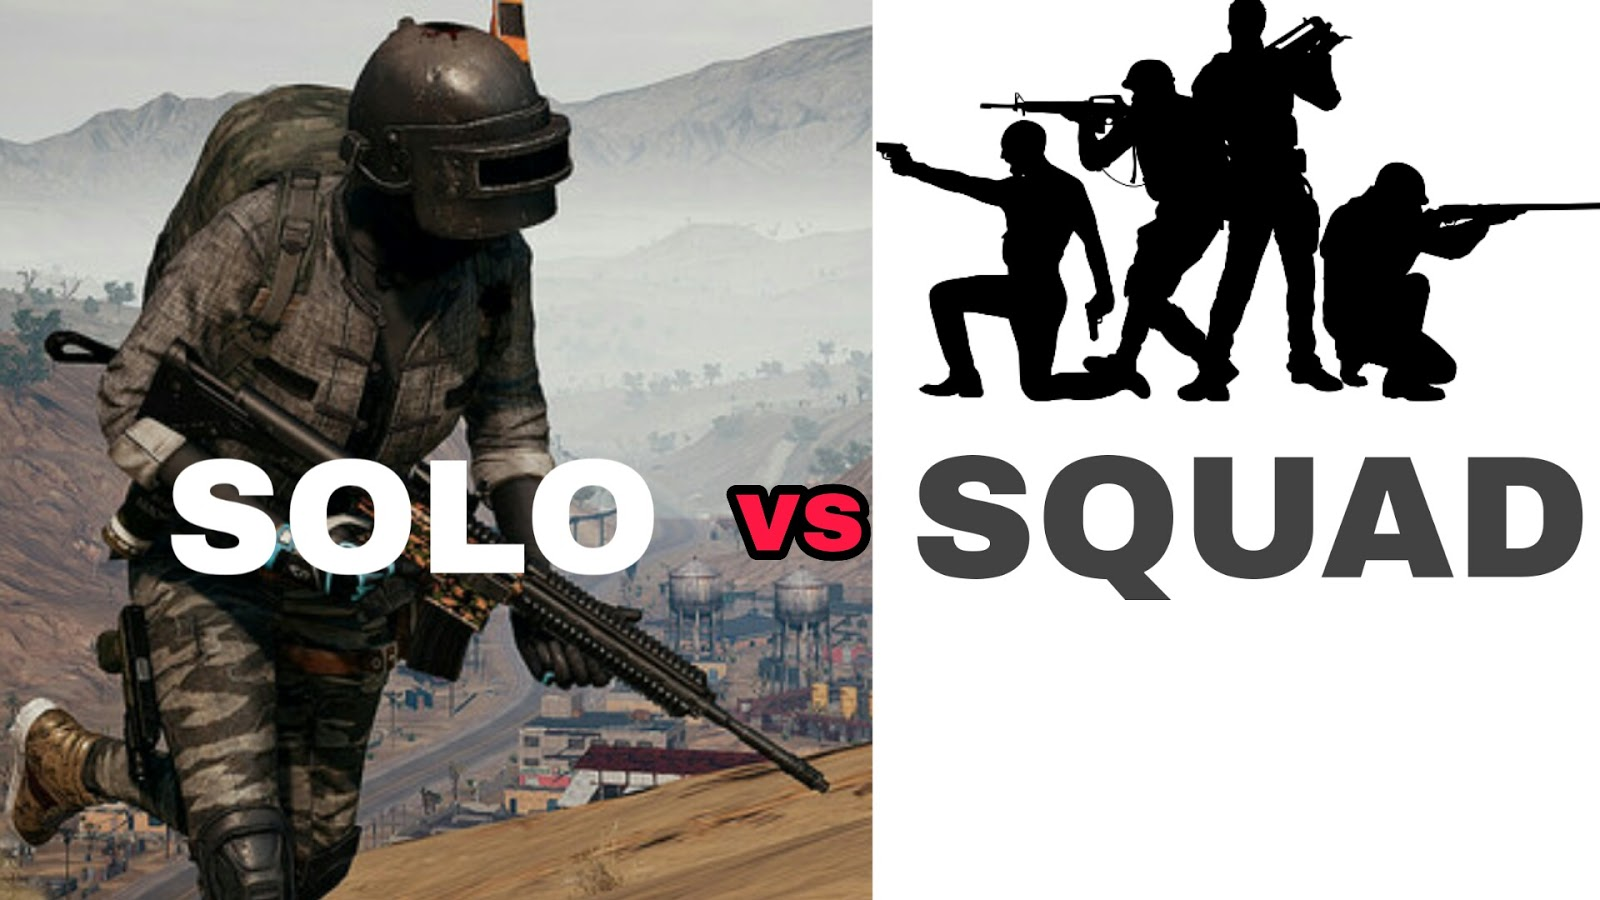 Solo Vs Squad Pubg Wallpaper - Free Uc For Pubg Emulator